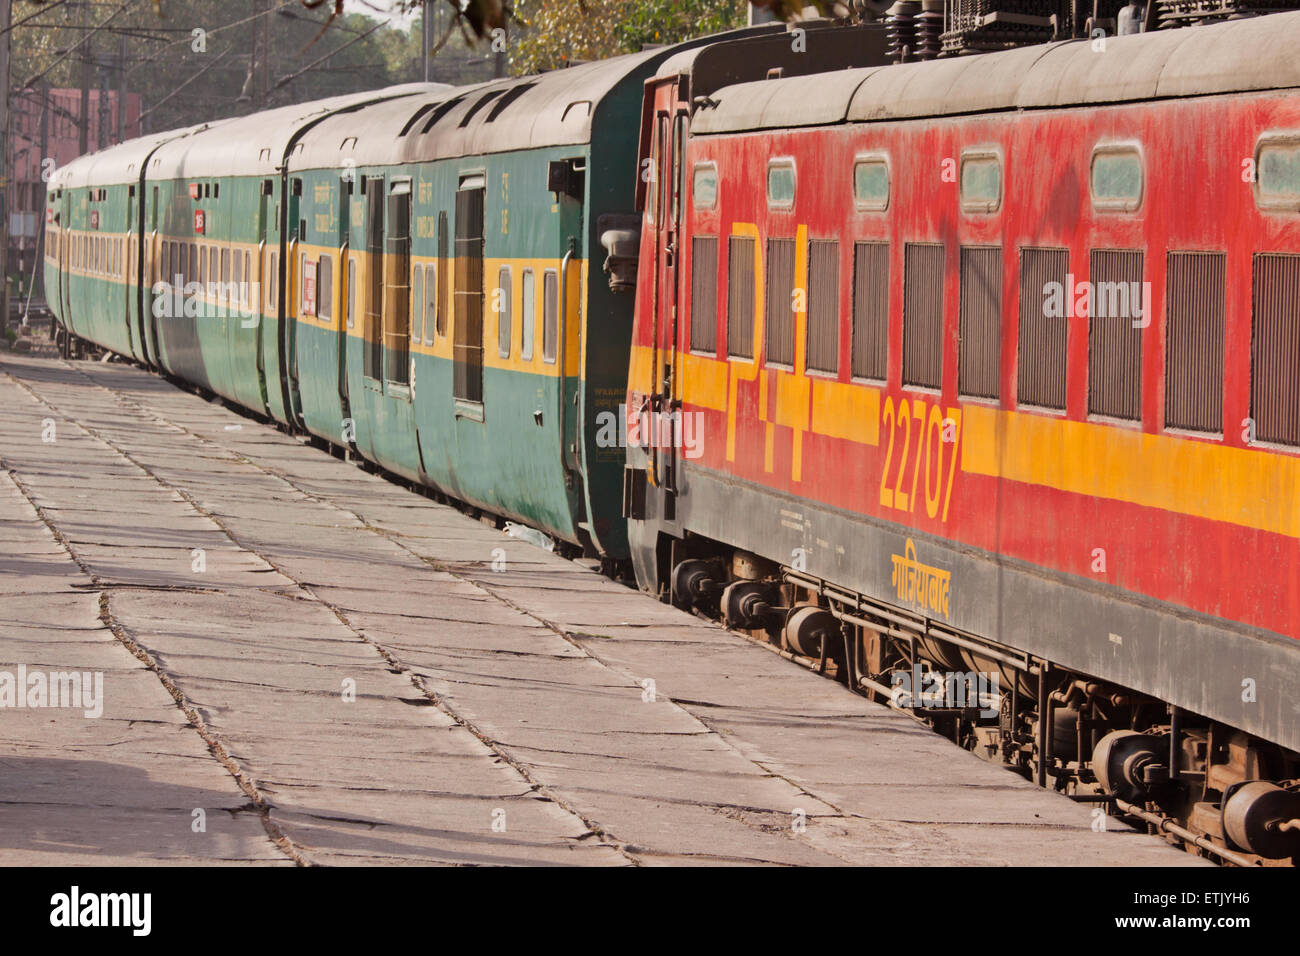 Train carriages displaying the distinctive livery of the Northern division of Indian railways in New Delhi - Stock Image